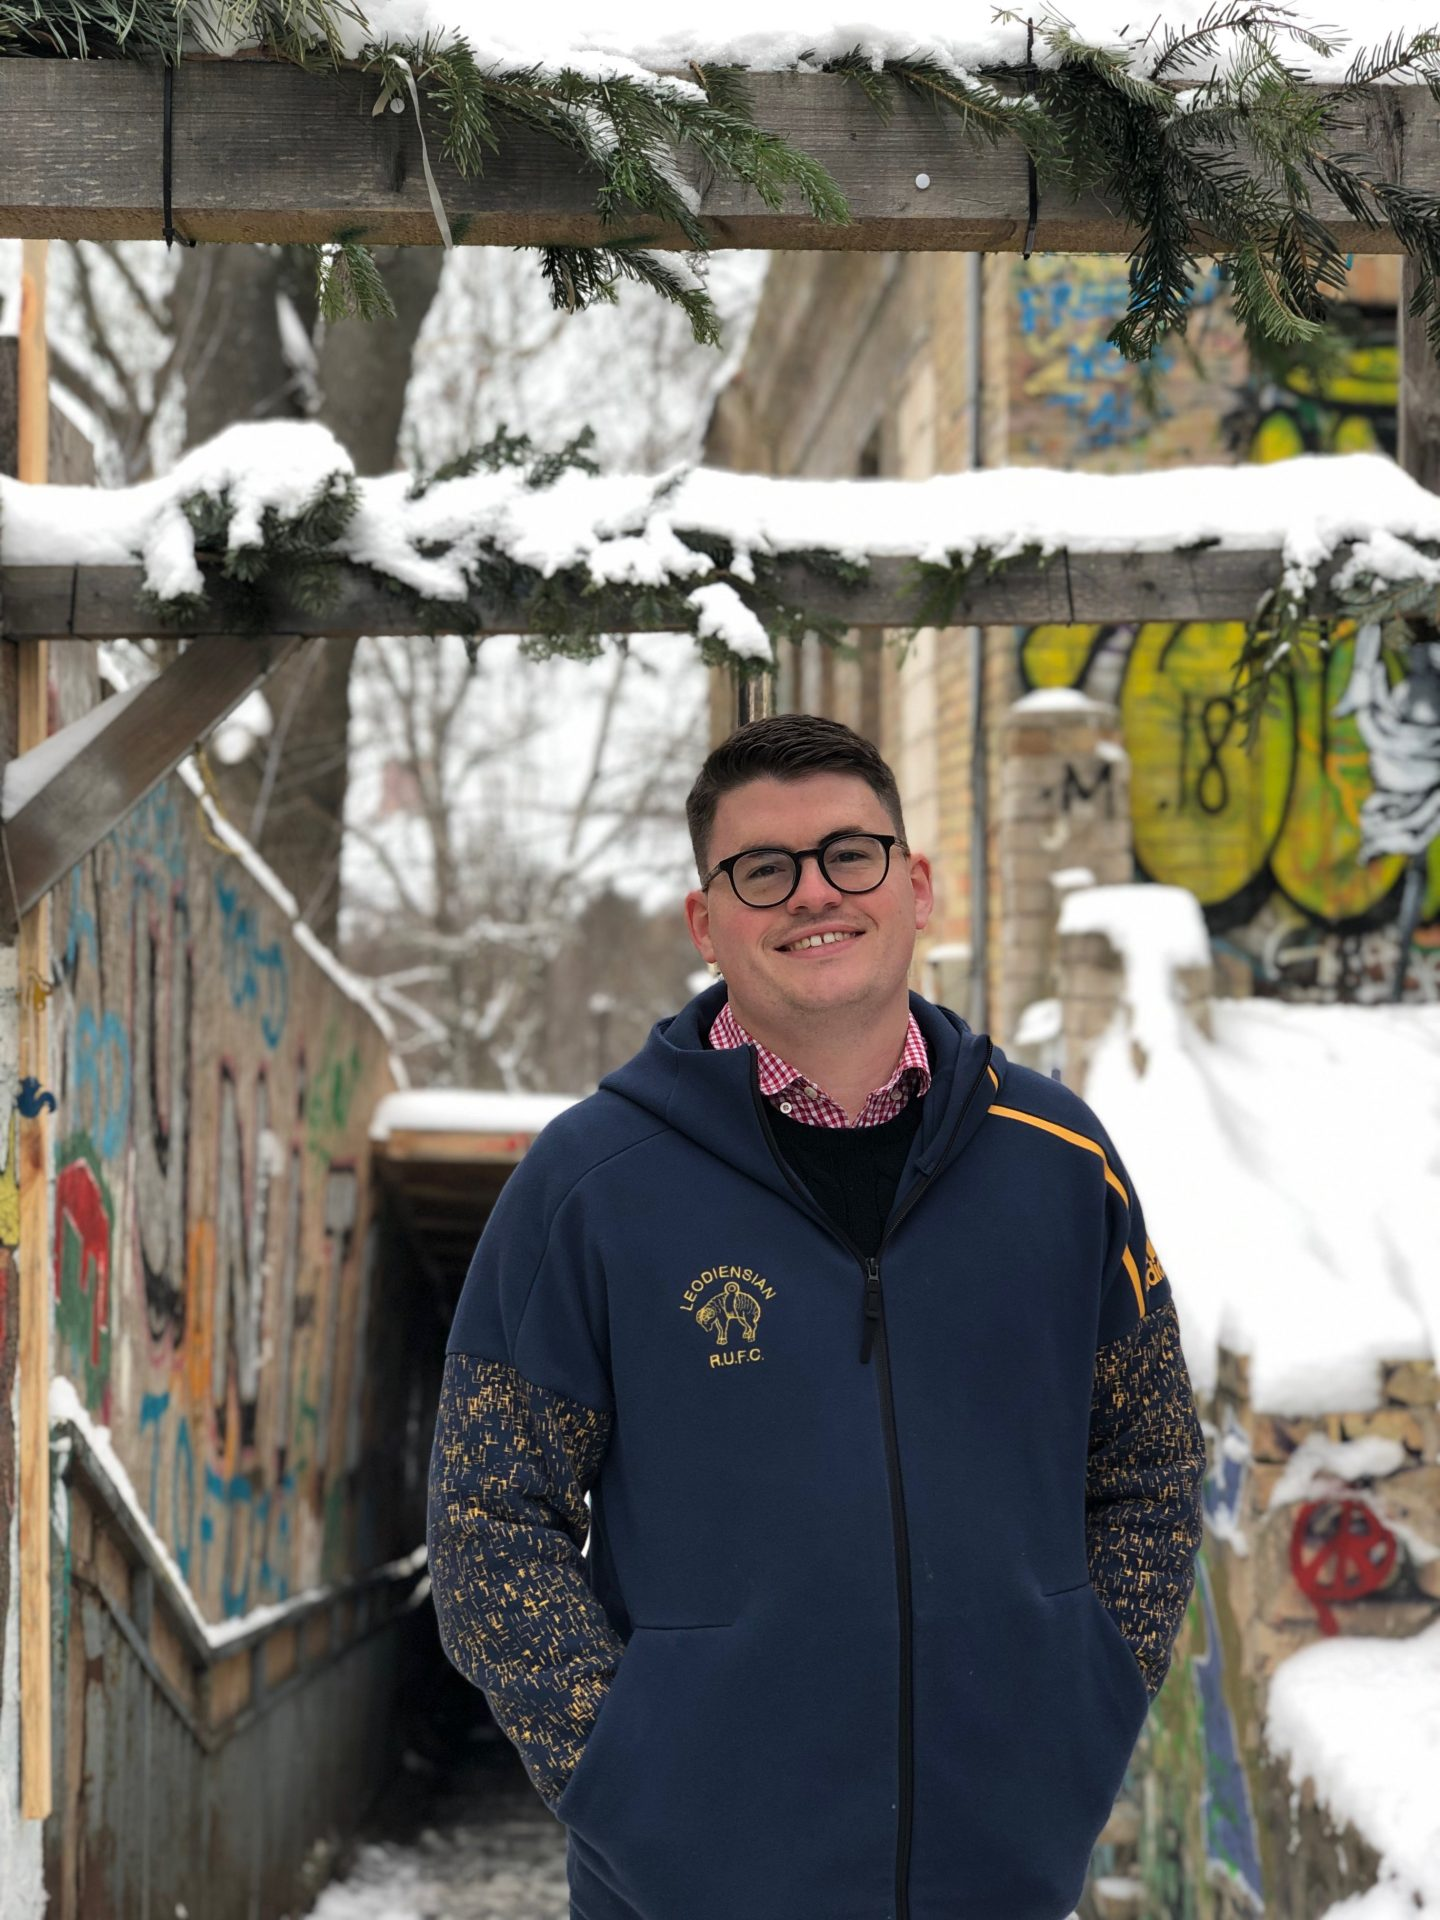 things to do in vilnius in winter: Billy in uzepis enjoying some street art and smiling at the camera